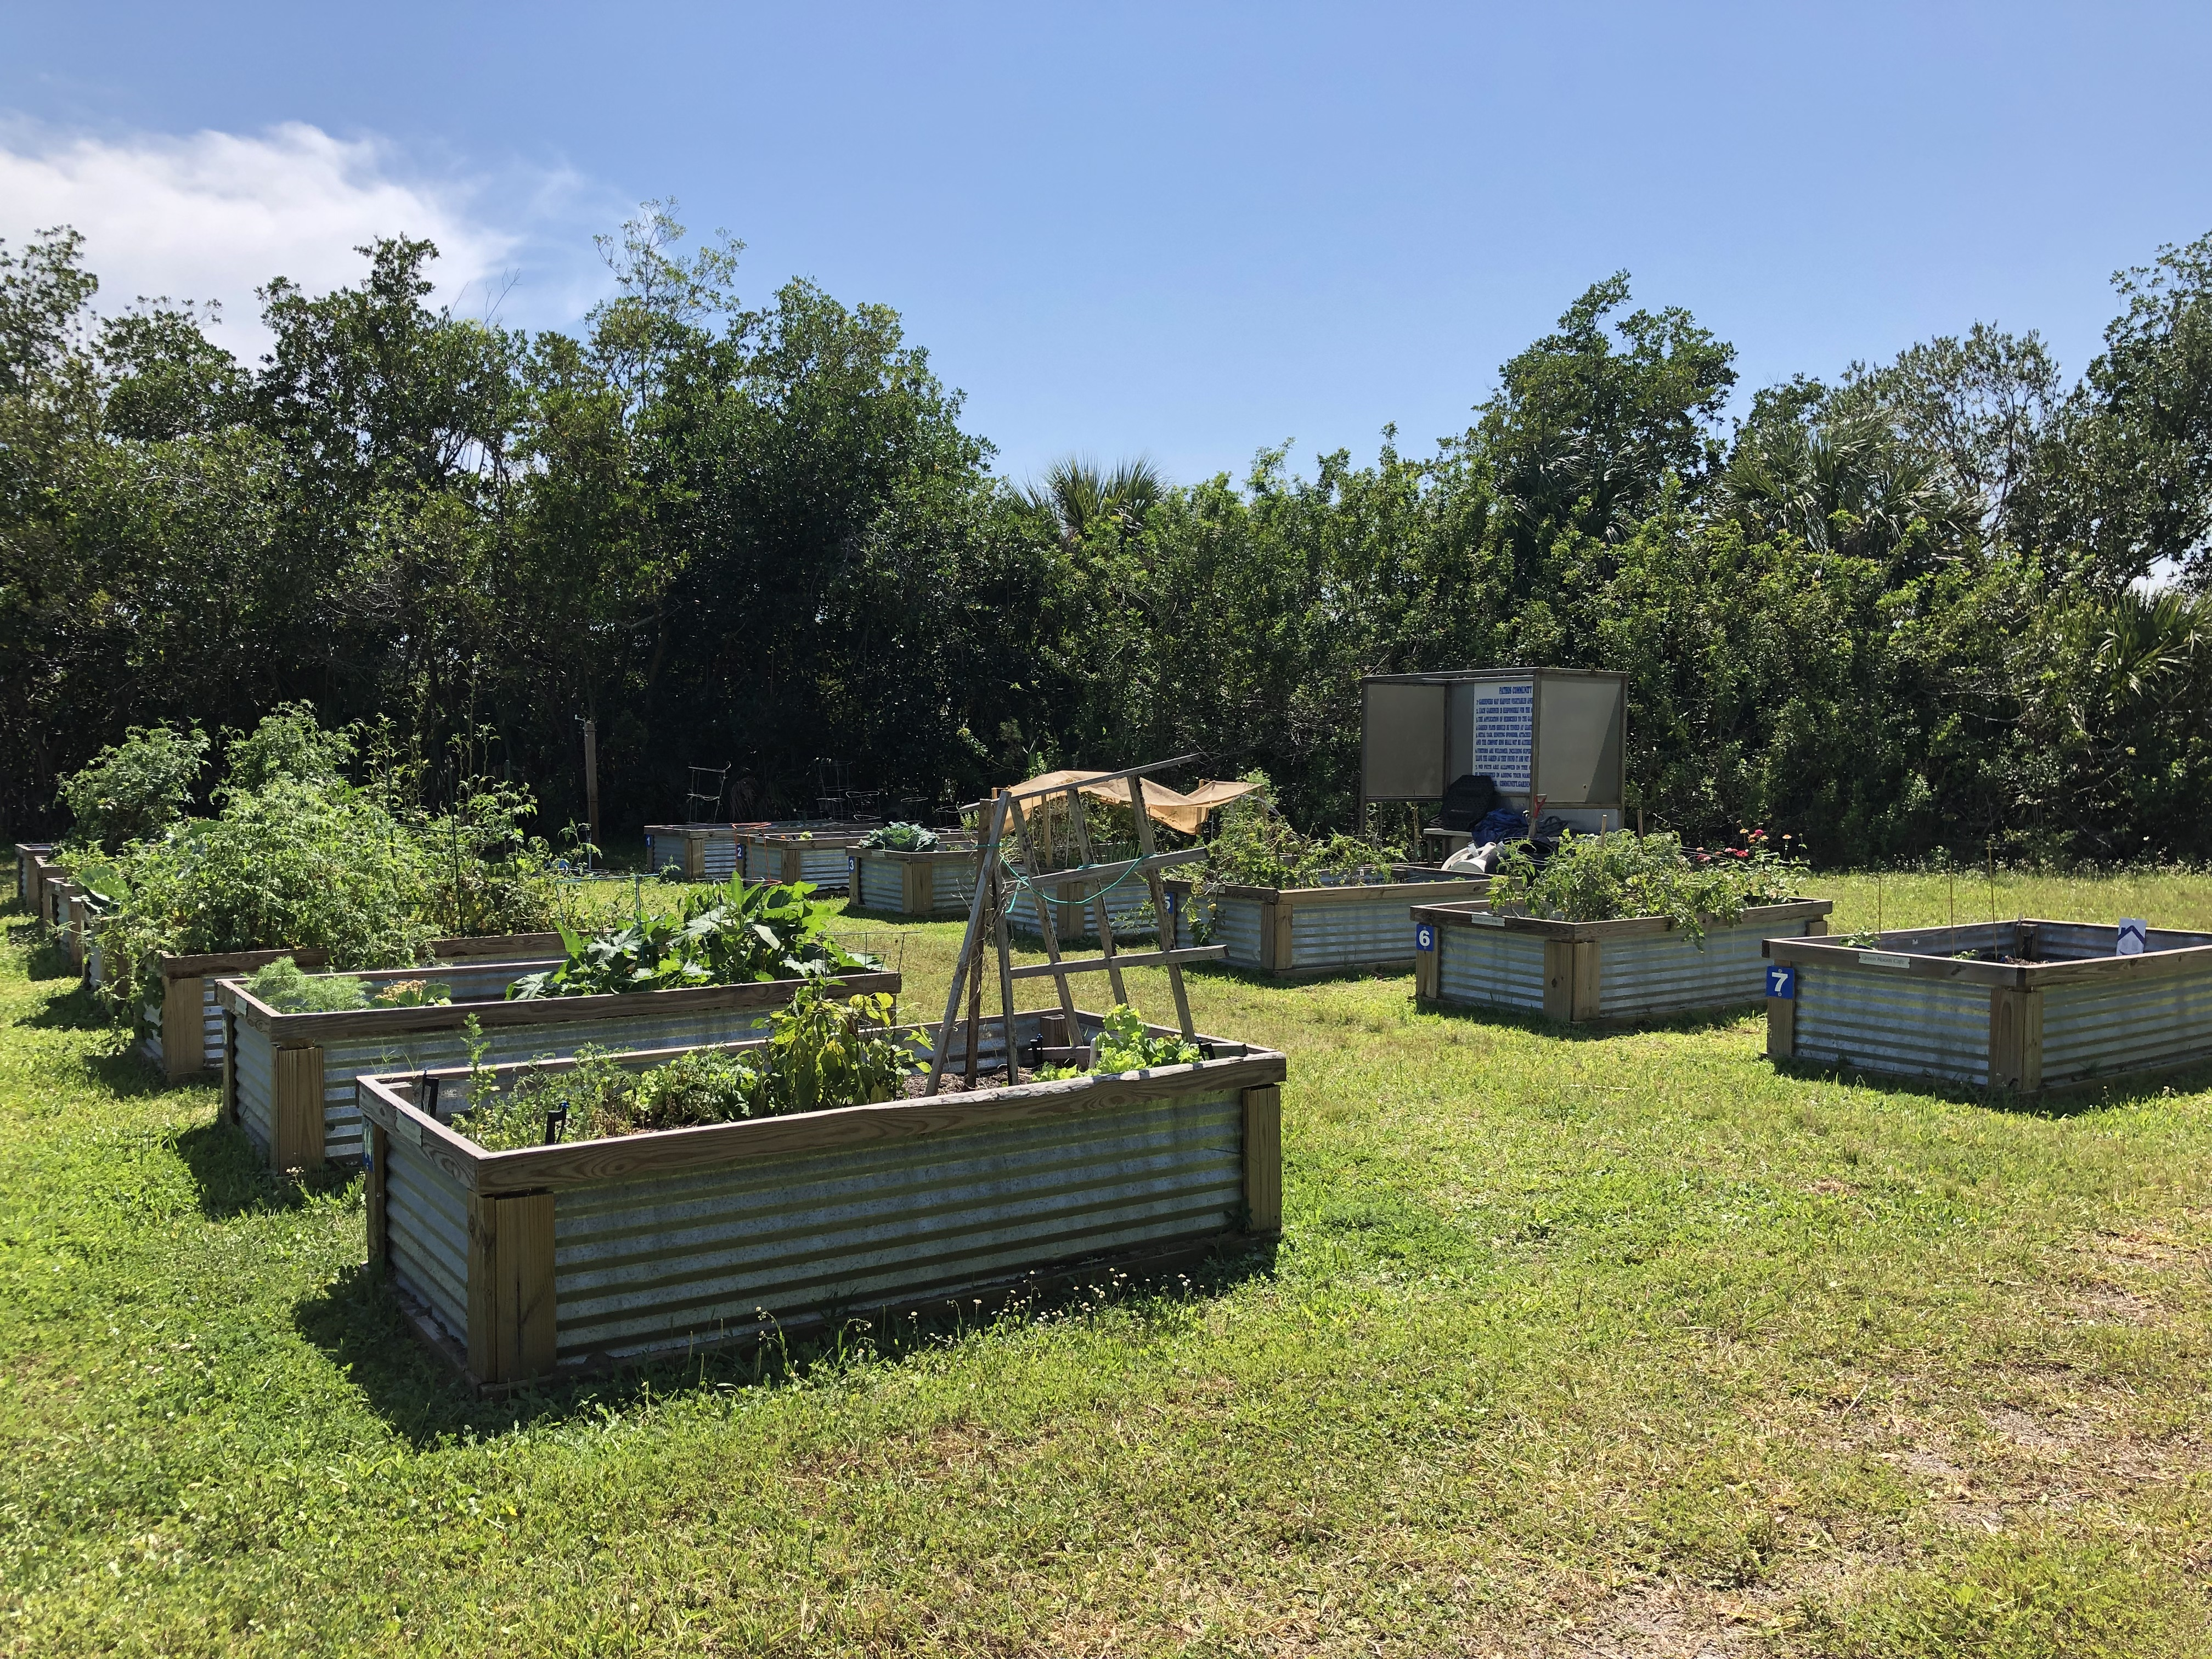 Photo of Community Garden showing all raised garden beds